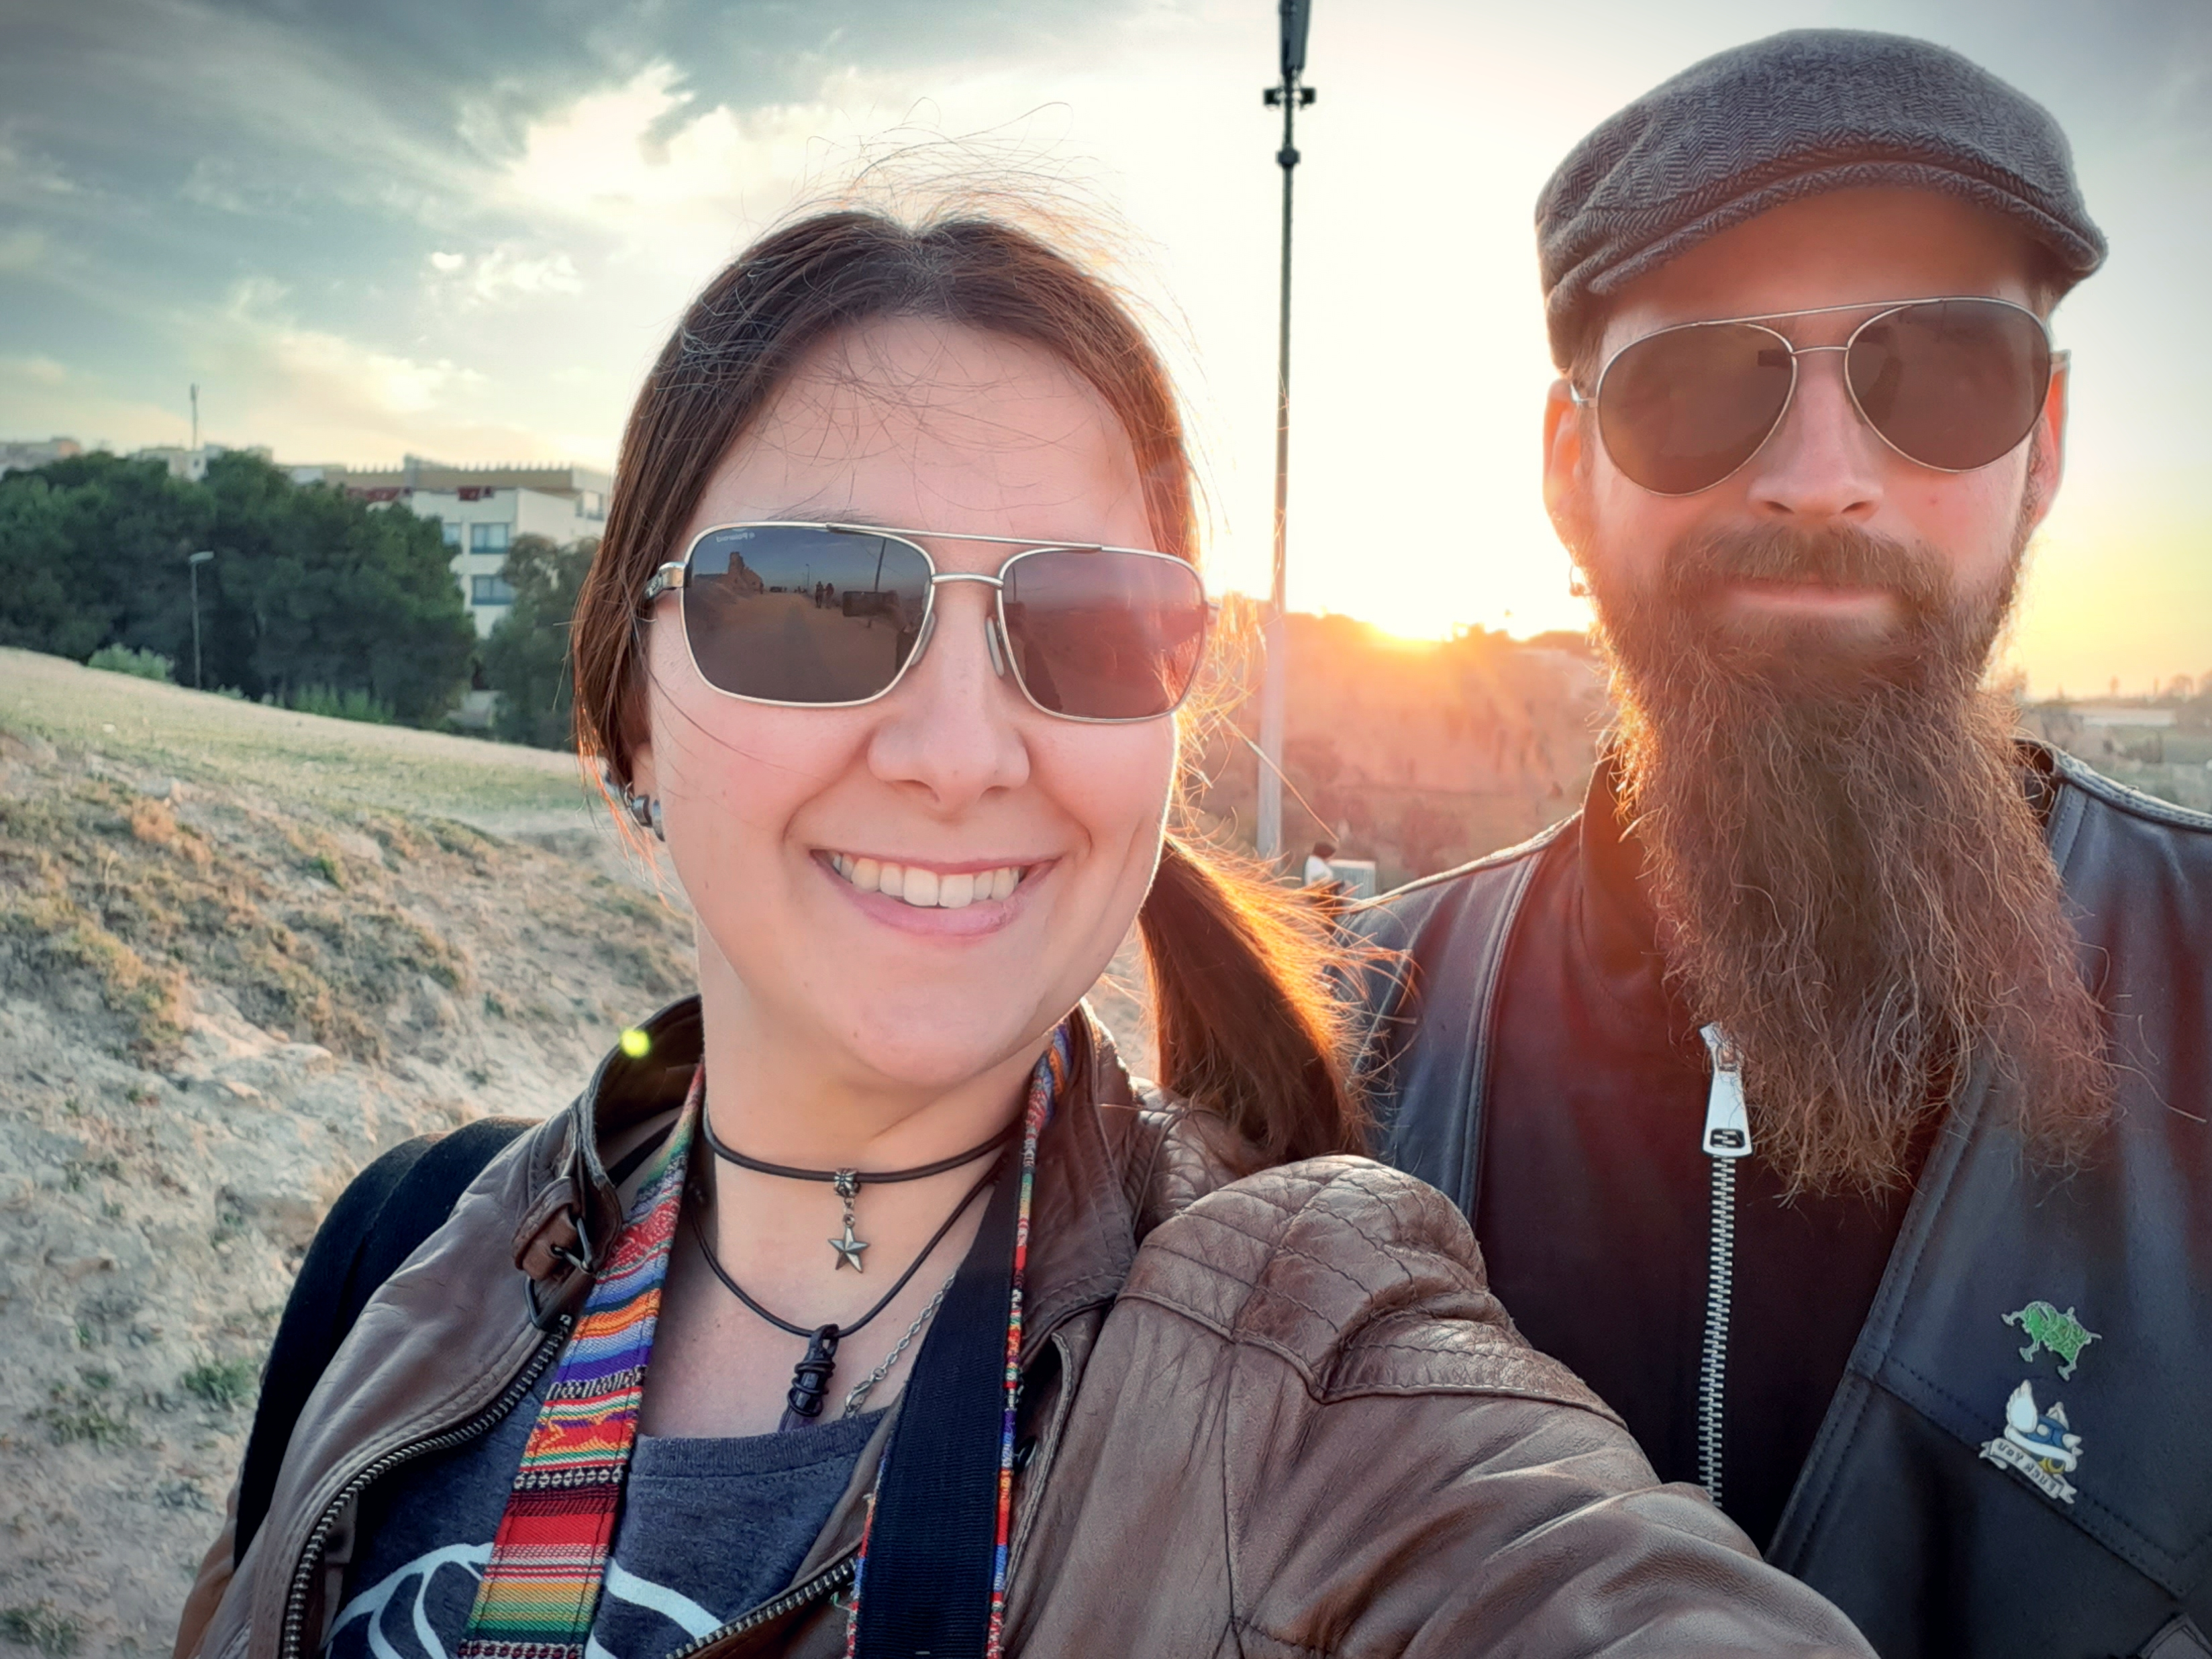 A selfie of the travelling couple. The sun is setting in the background.